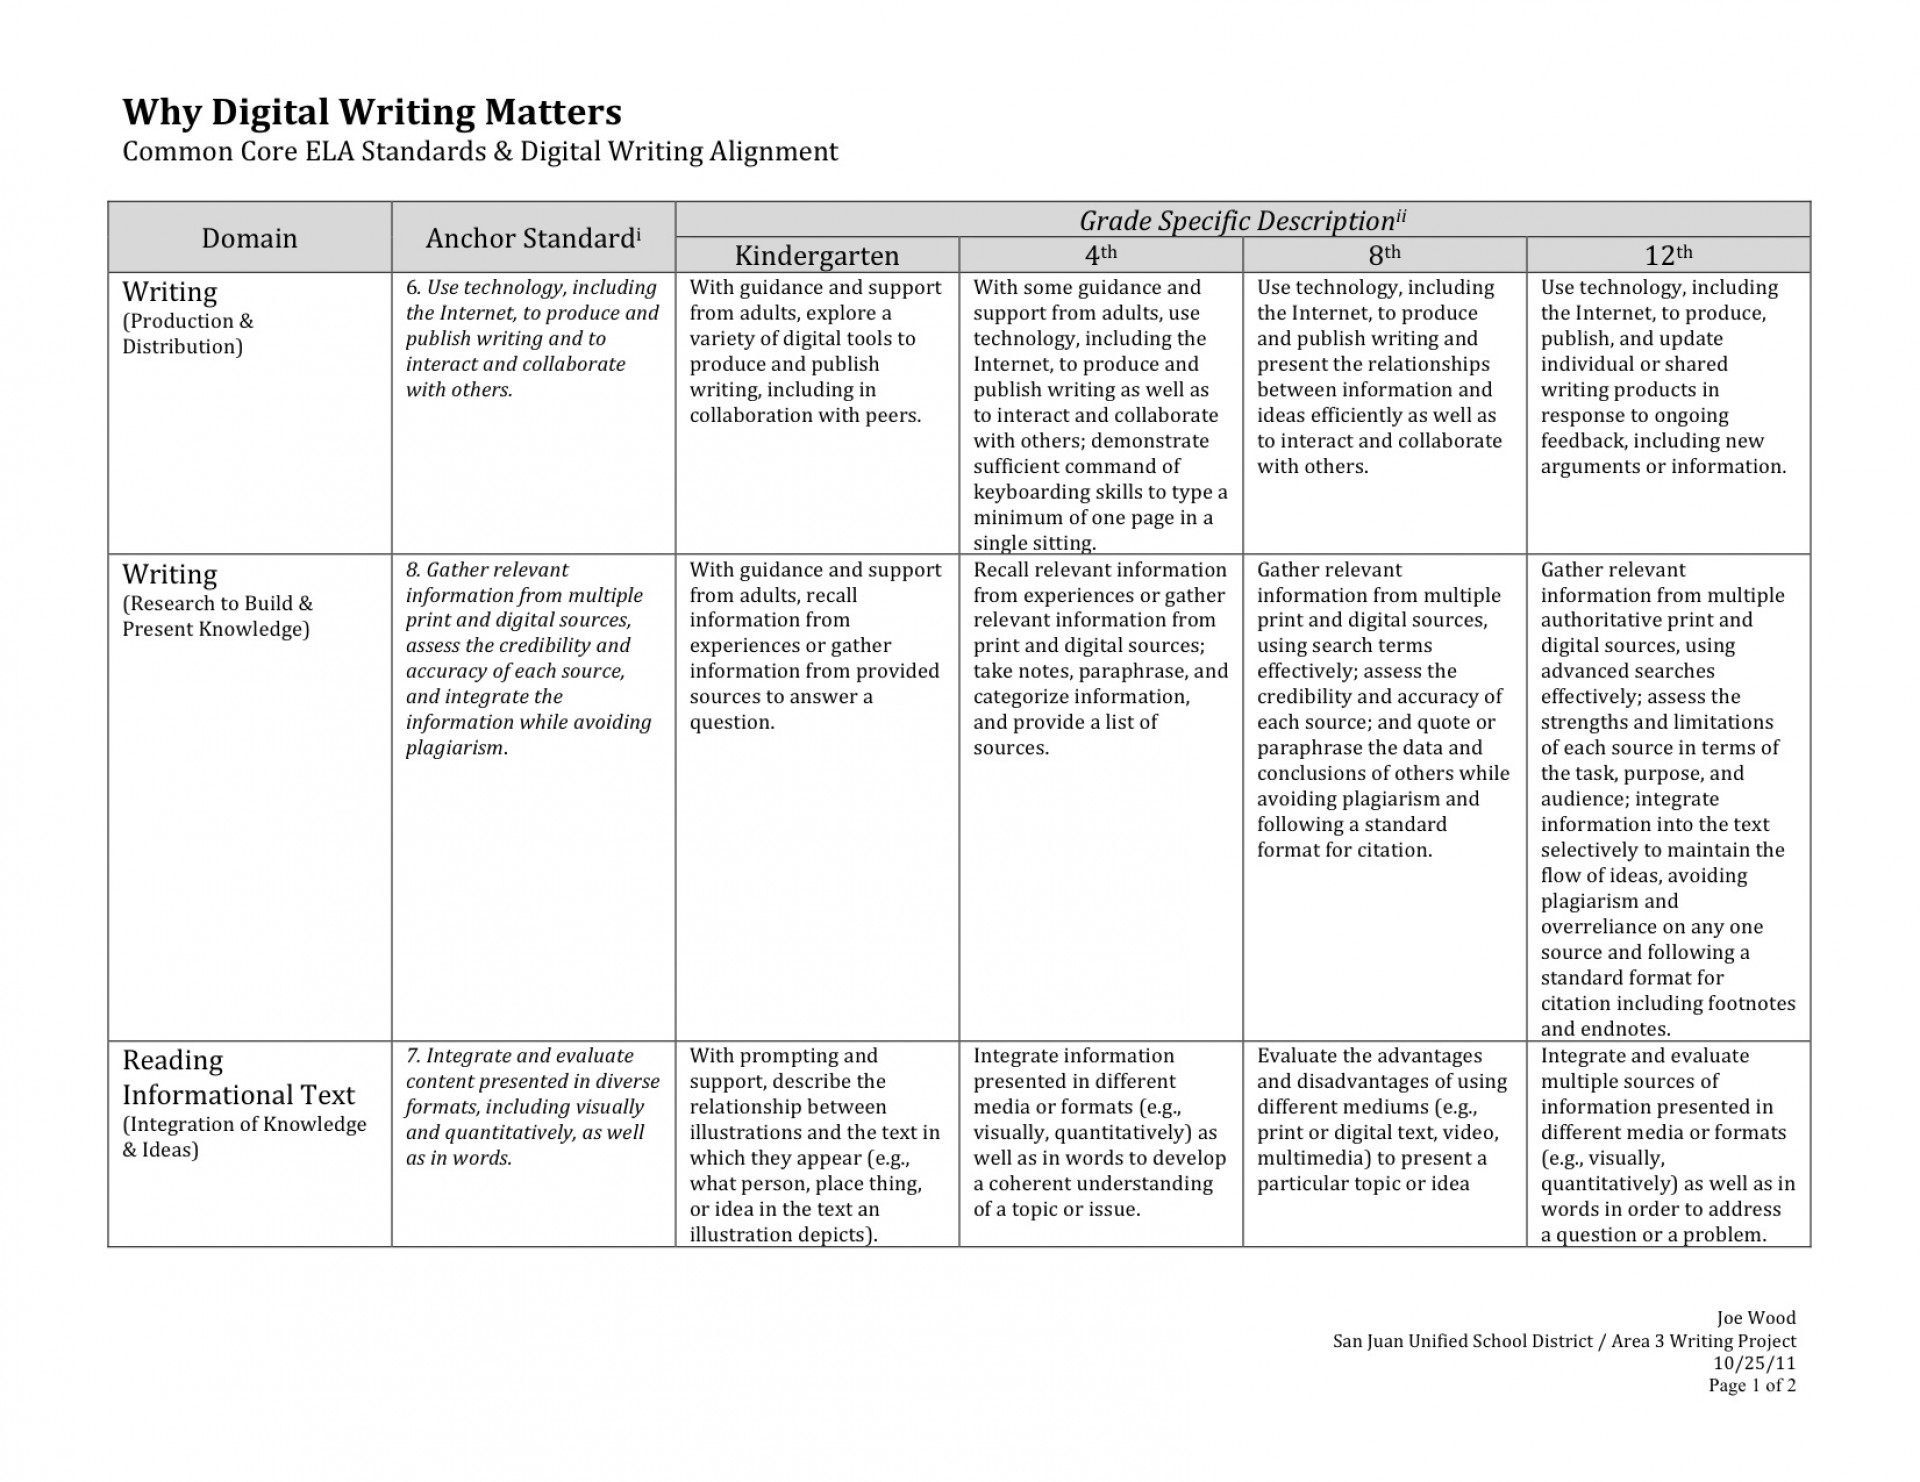 007 Why Digital Writing Matters According To The Common Core Ela Standards1 Research Paper High School Physics Unforgettable Rubric 1920